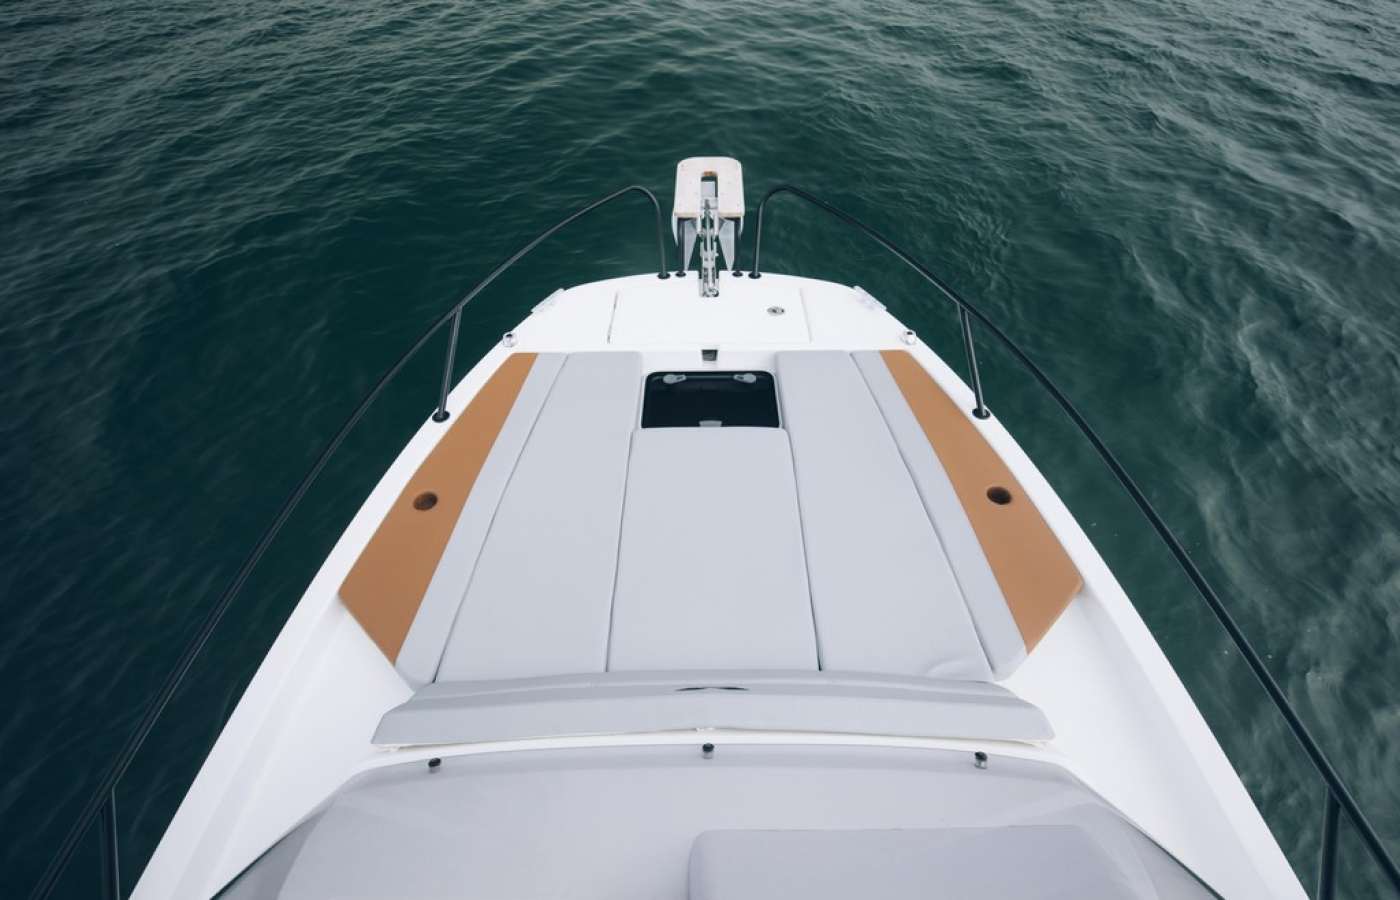 View of the sun deck of the boat